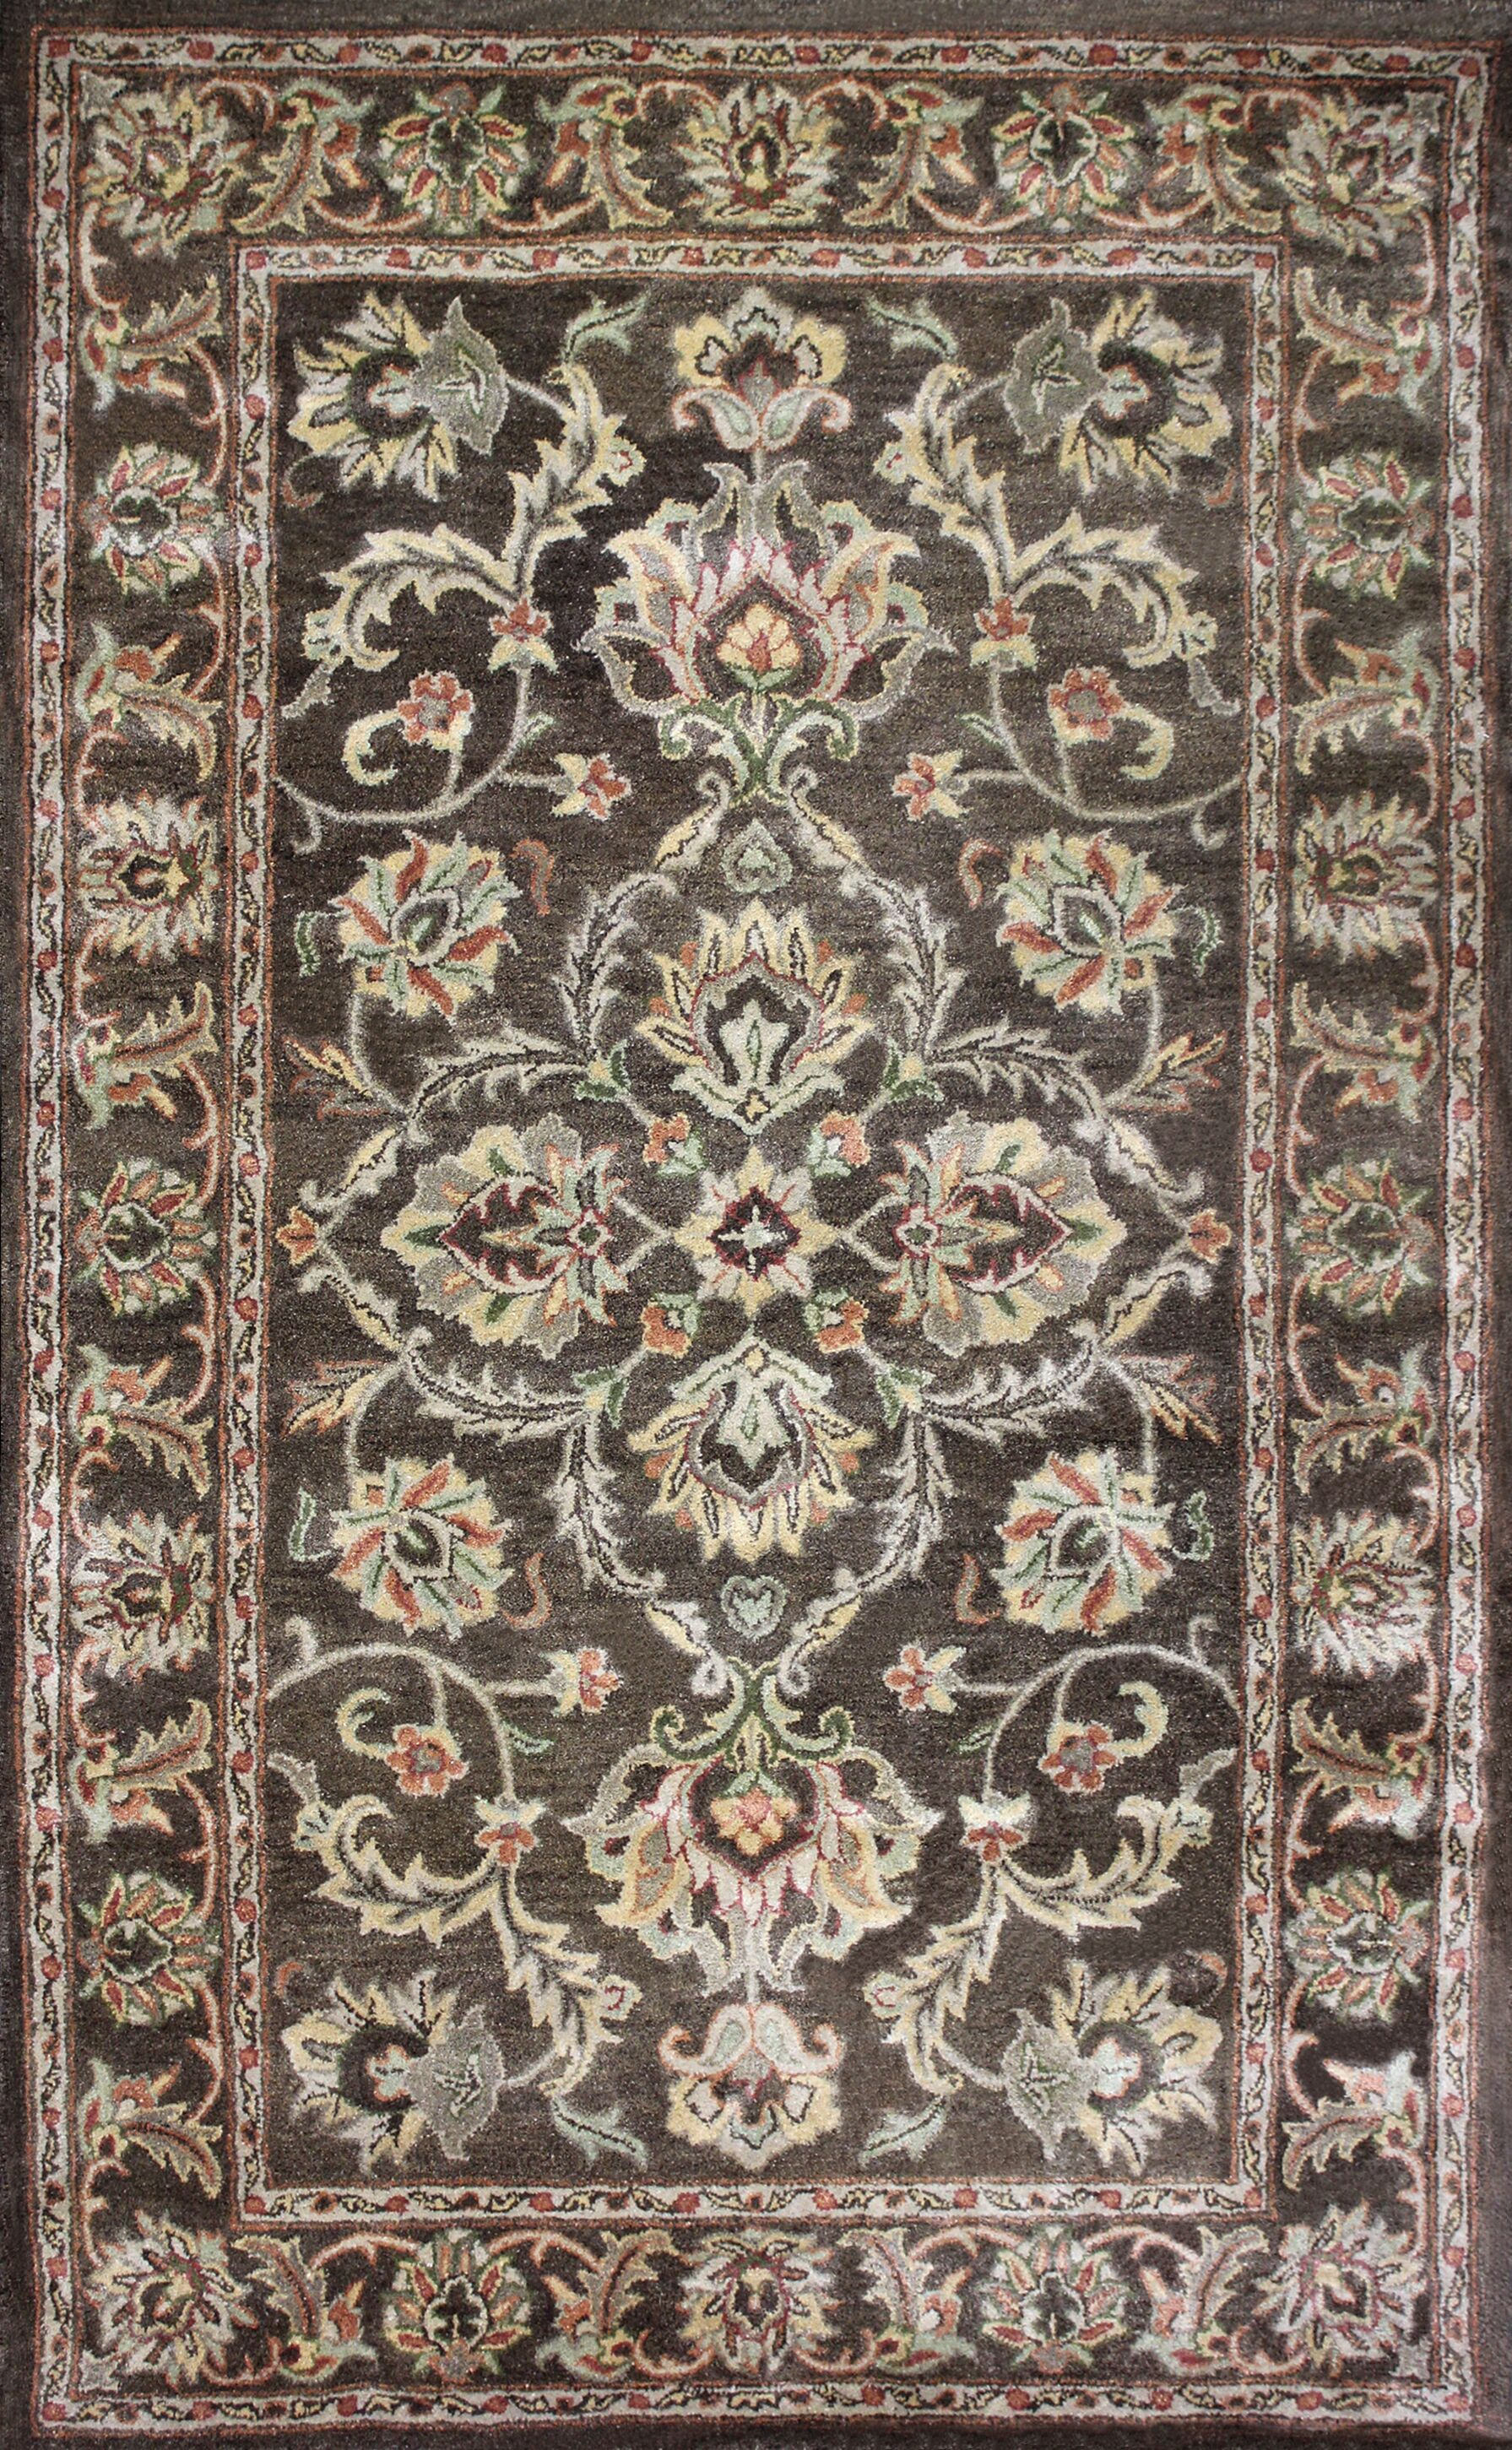 Sneed Hand-Tufted Brown Area Rug Rug Size: 8' x 11'